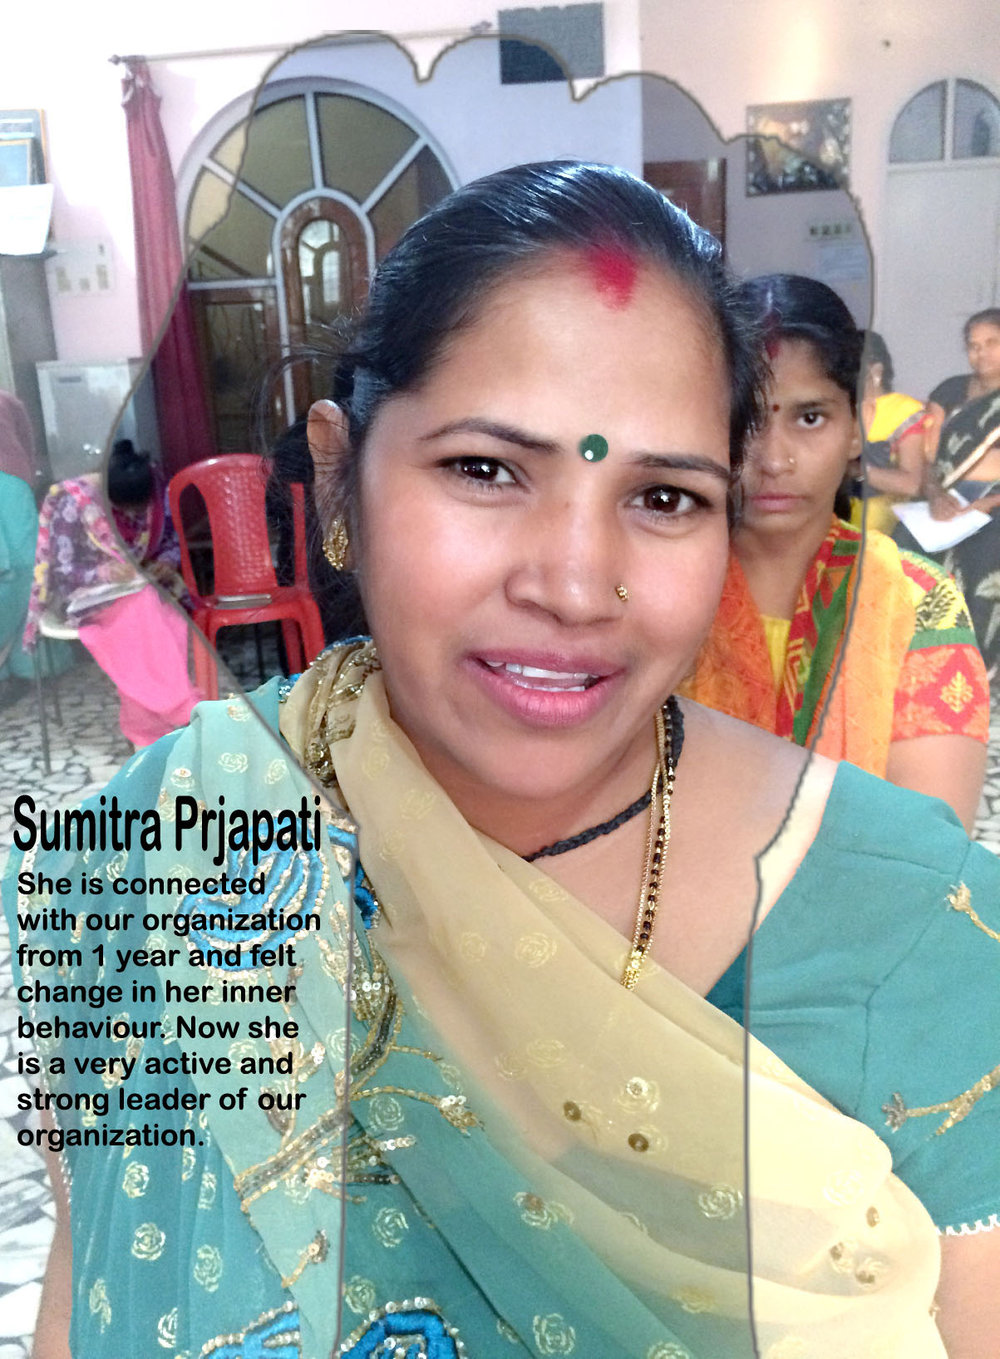 Sumitra prajapati women human right defender--.jpg